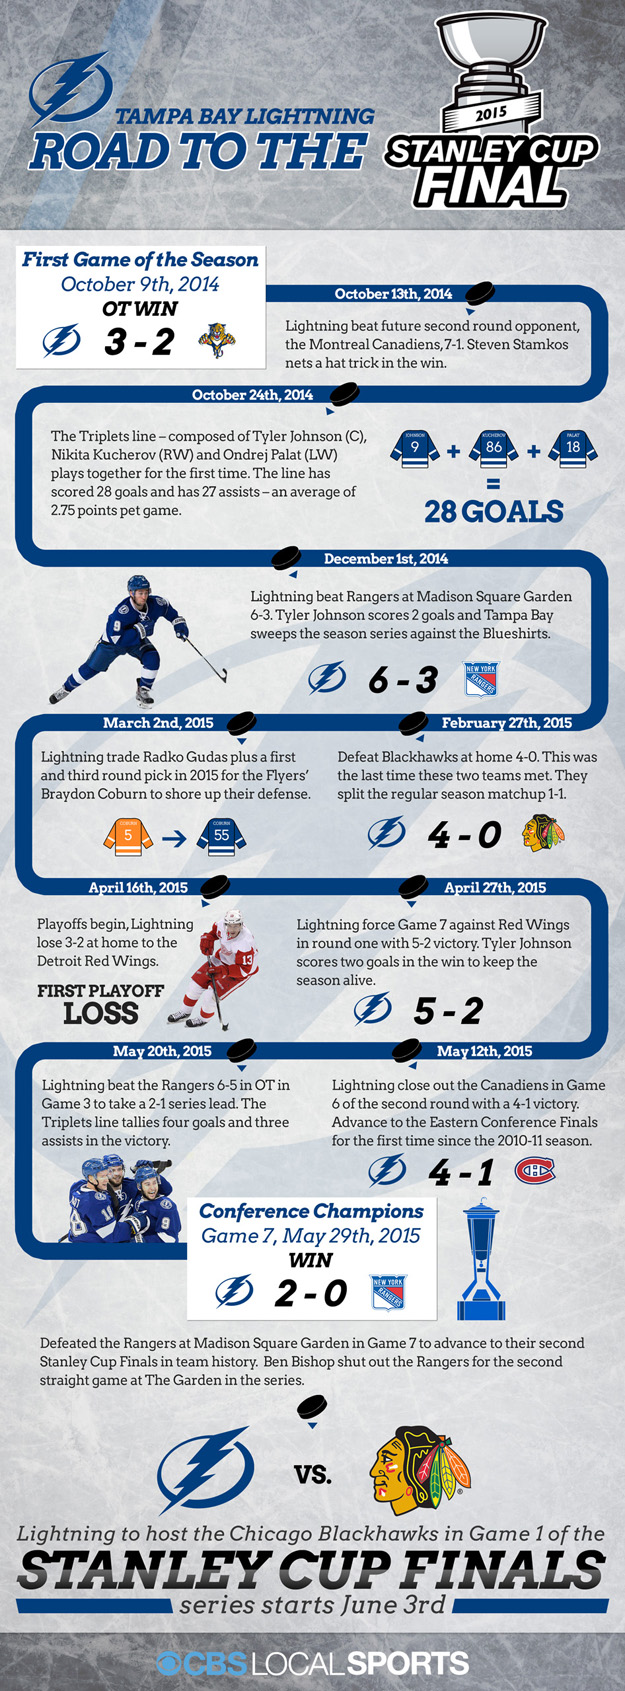 A look at the long road that the Tampa Bay Lightning took to get to the Stanley Cup Finals.